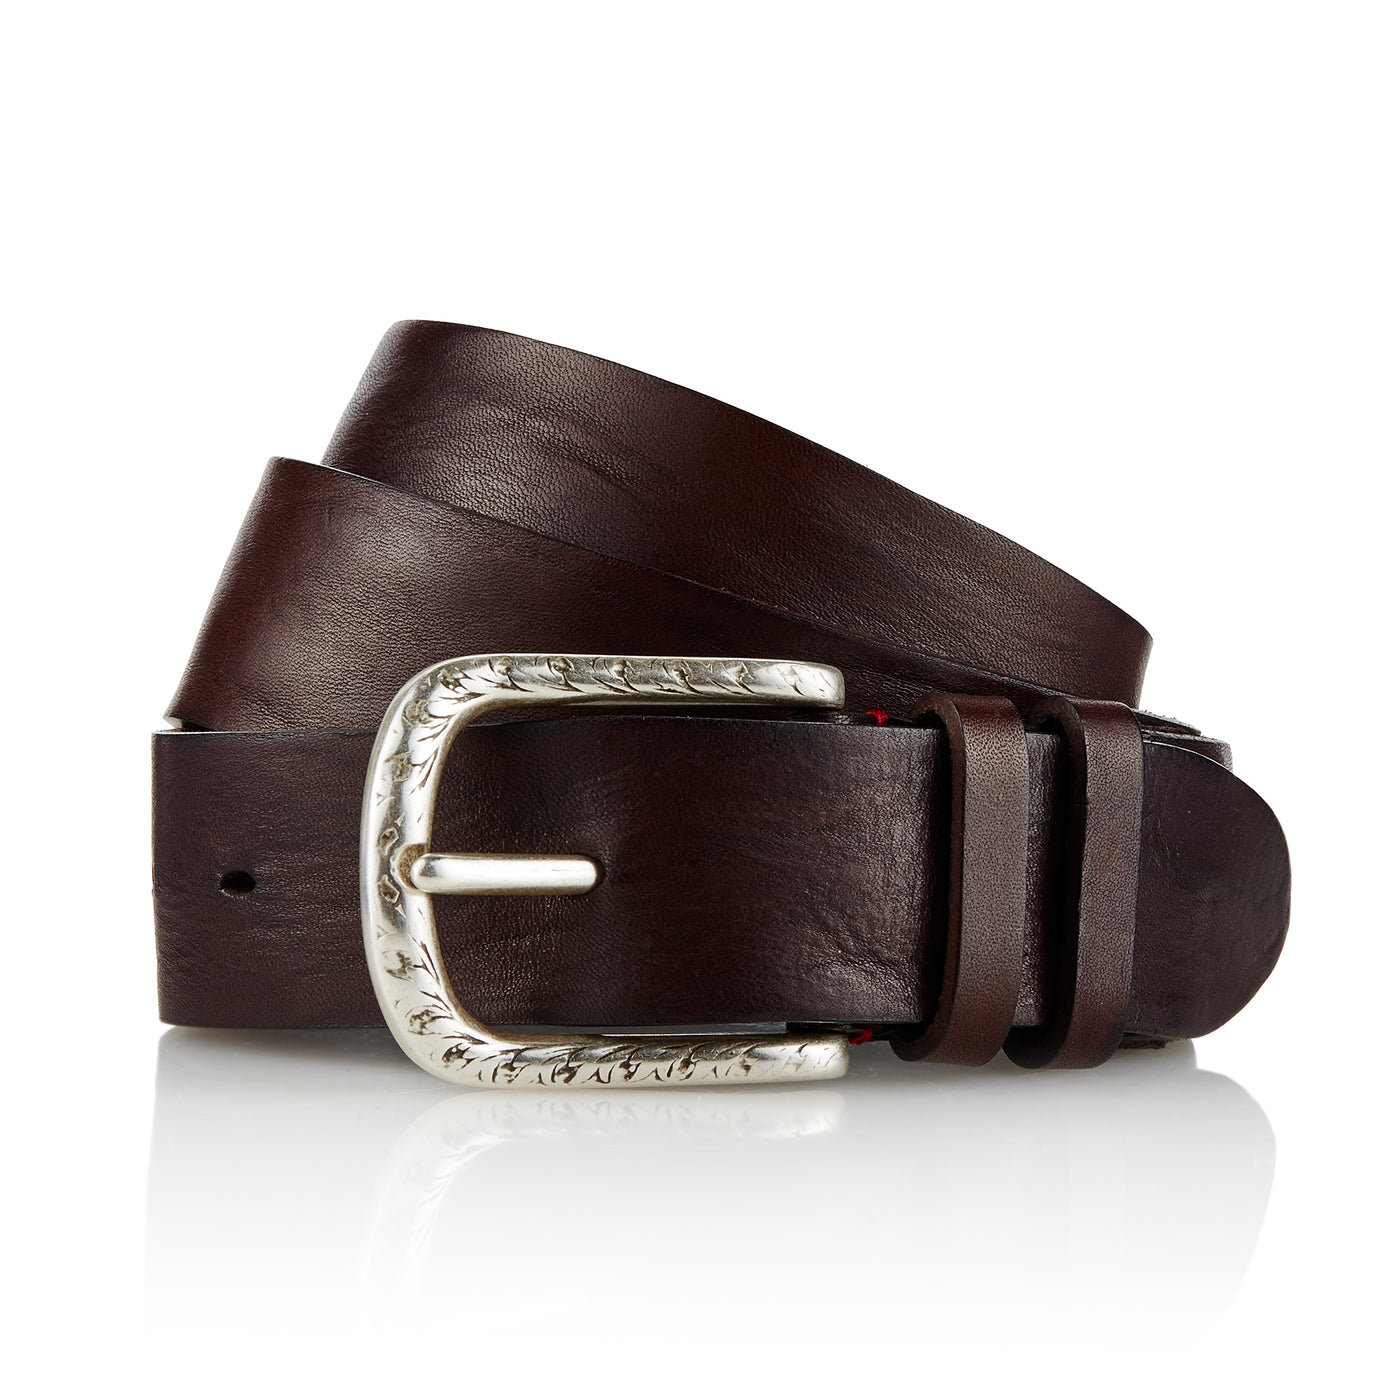 Dene - Handcrafted Italian Belt / Dark Brown